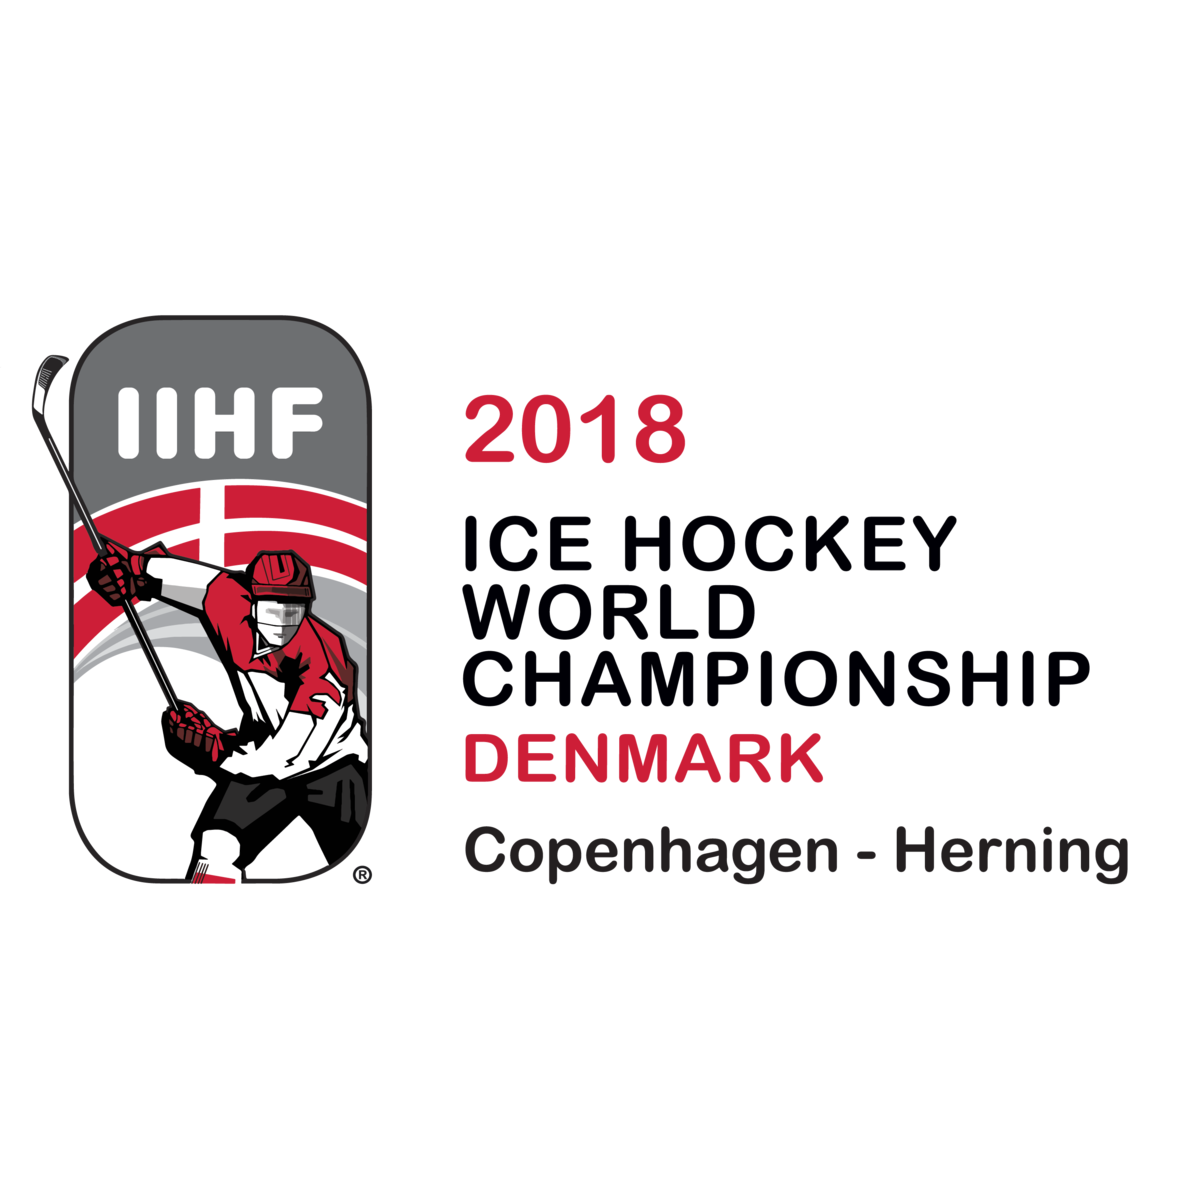 2018 Ice Hockey World Championship